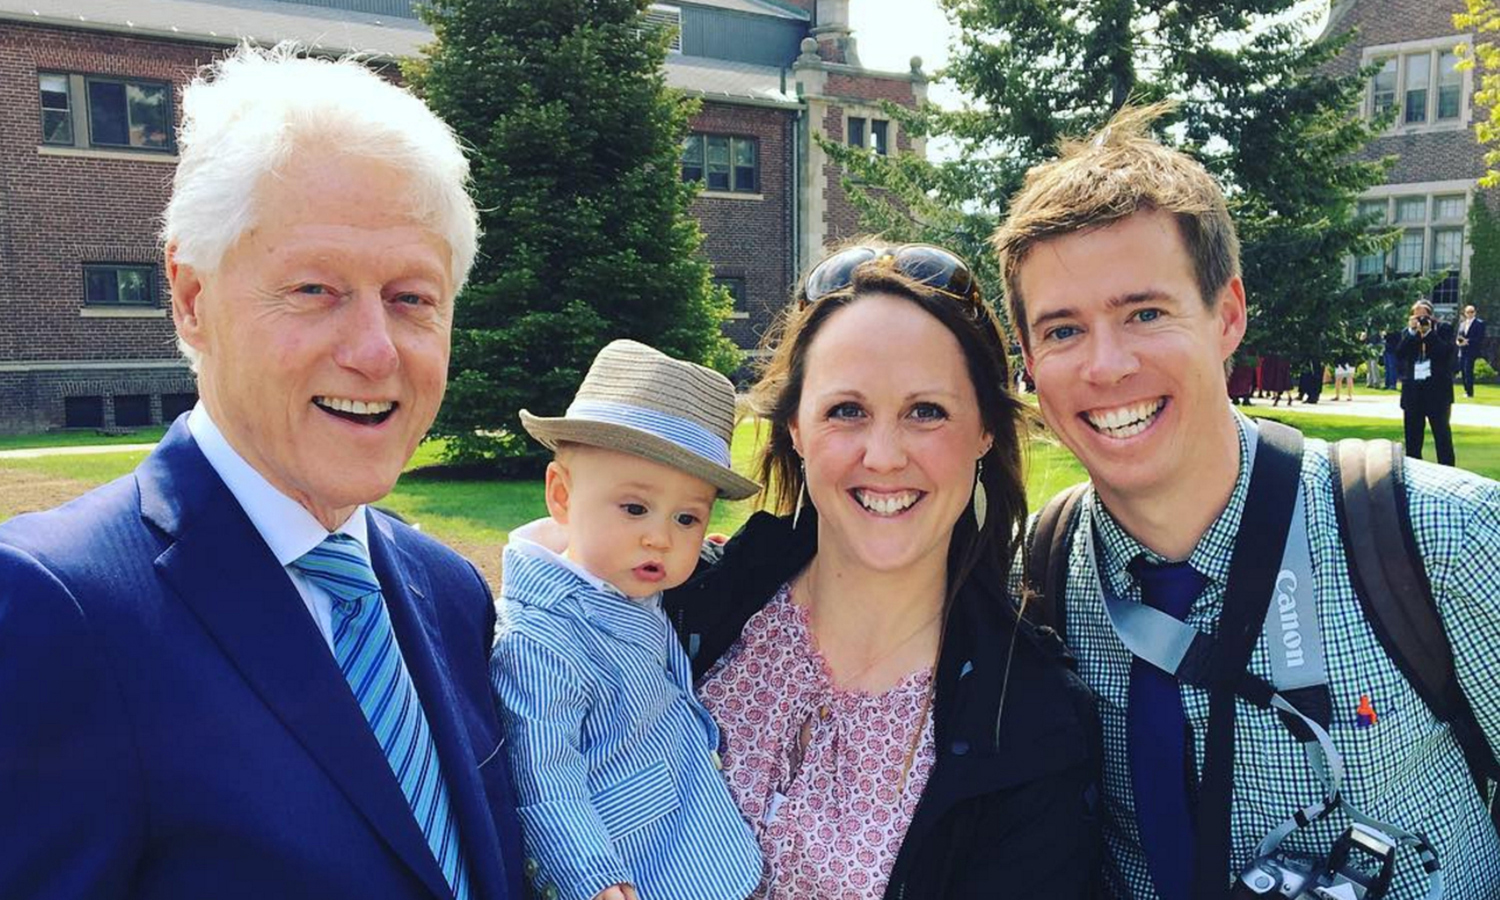 Ben Riskie, son of Hobart Tennis Head Coach Tim Riskie (right) and William Smith Field Hockey Assistant Coach Sophie Riskie '07, makes an appearance for a photo with President Bill Clinton on Sunday.